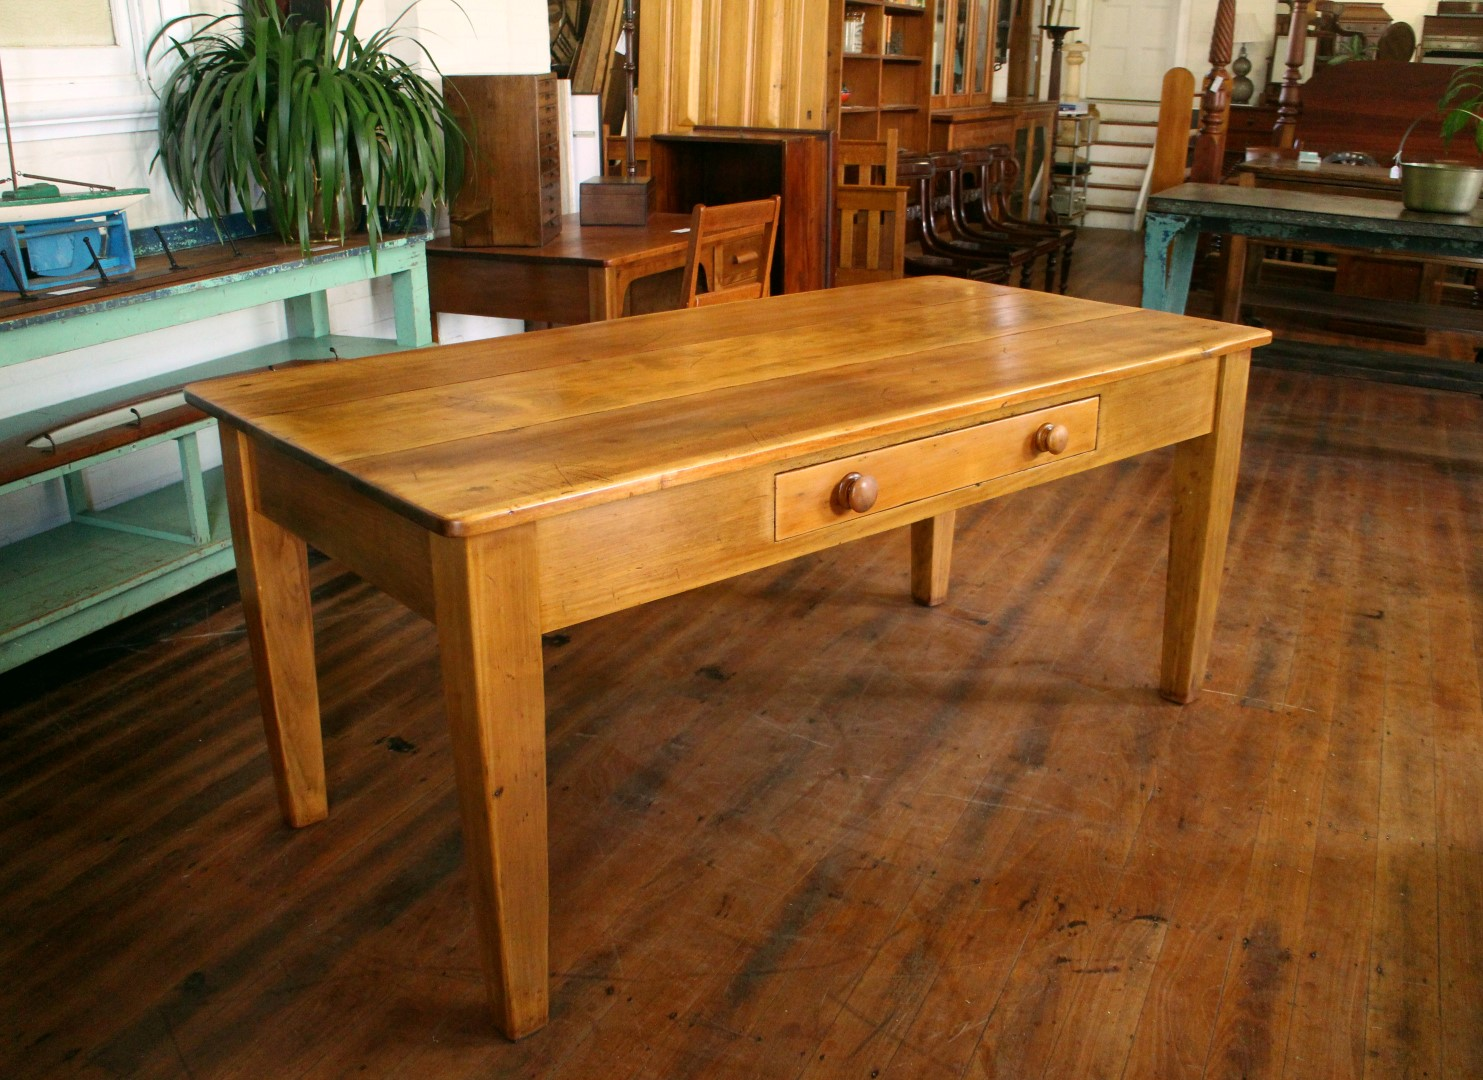 A  lovely Antique Kauri Pine Farmhouse Kitchen Table ,circa 1890.  1830mm x 820mm x 800mm(h) $2850